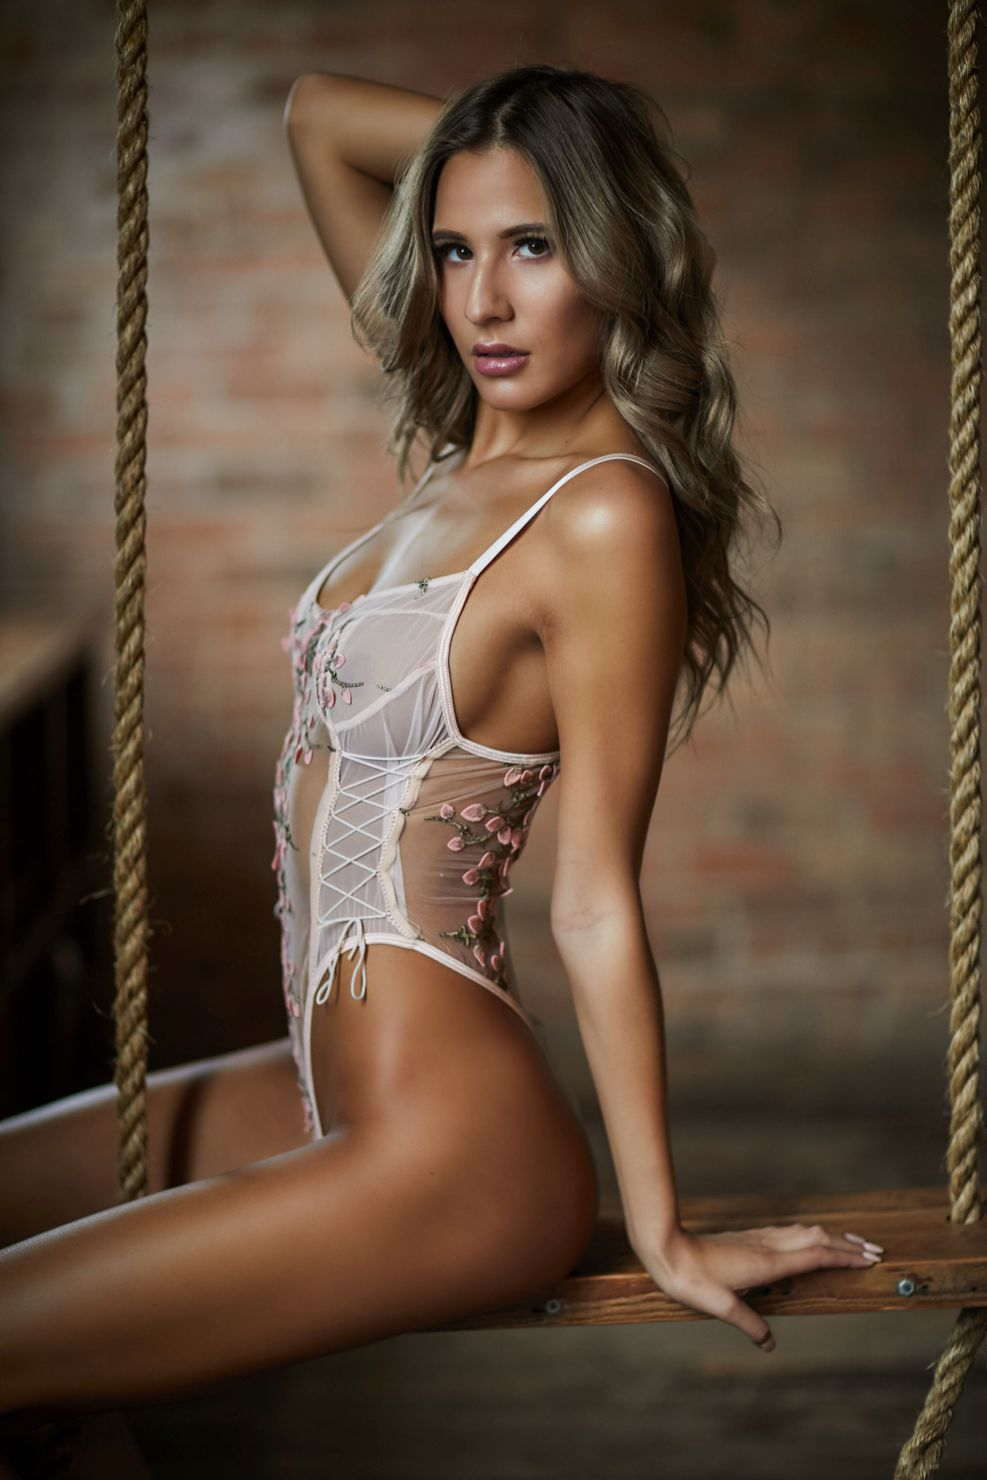 best chicago boudoir lingerie - Top 3 Reasons Why You Should Have a Boudoir Session.